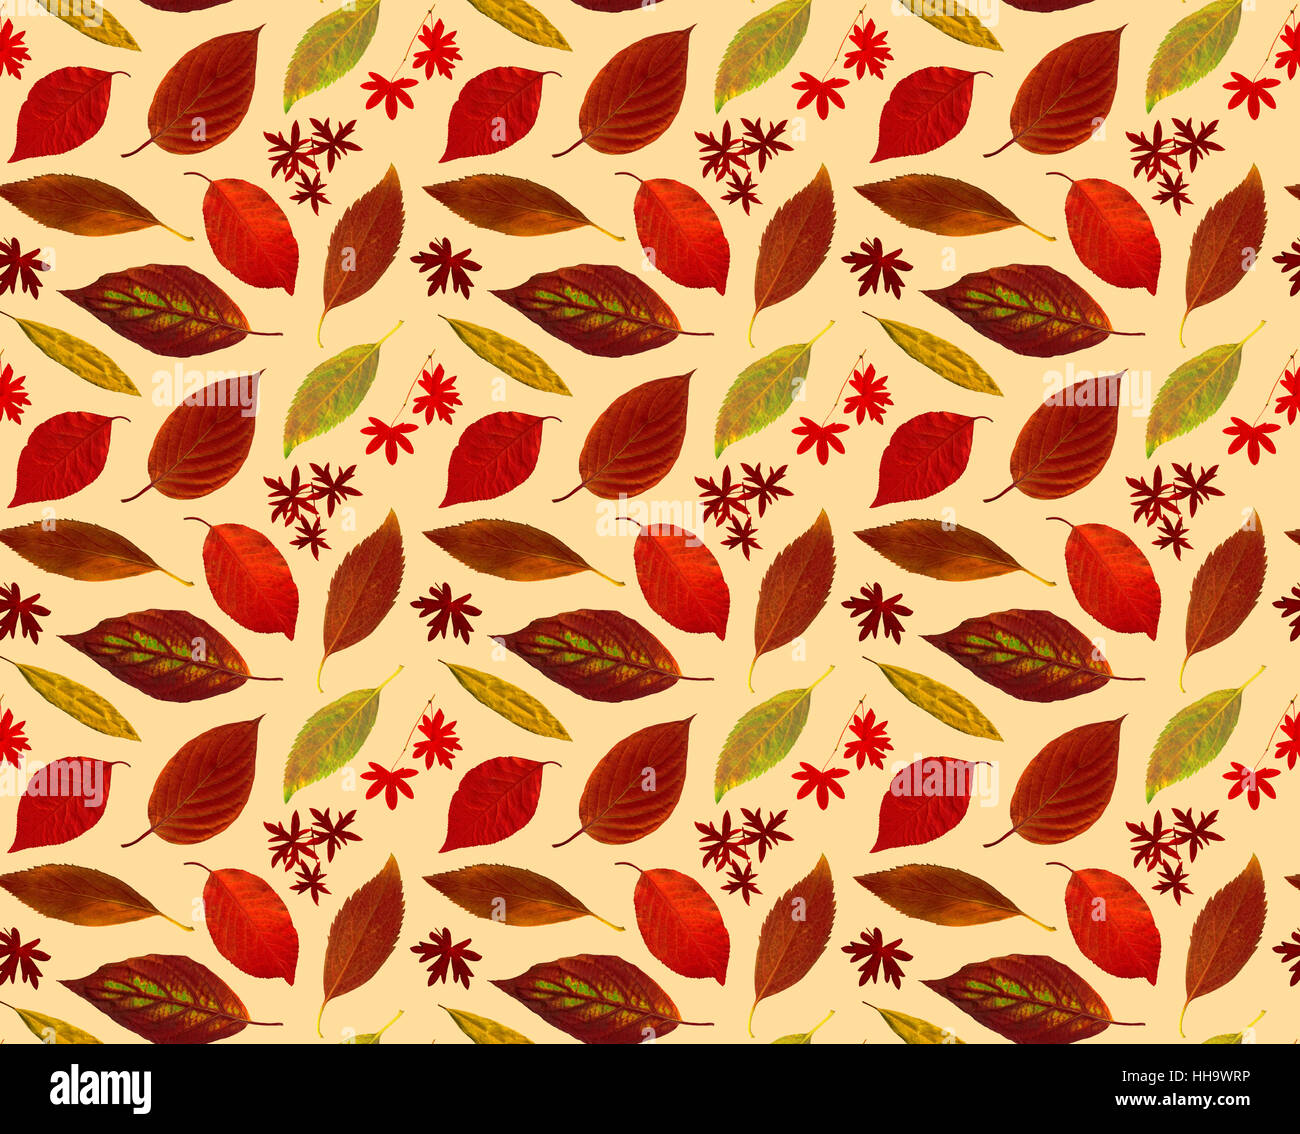 Colouring Wallpaper High Resolution Stock Photography And Images Alamy